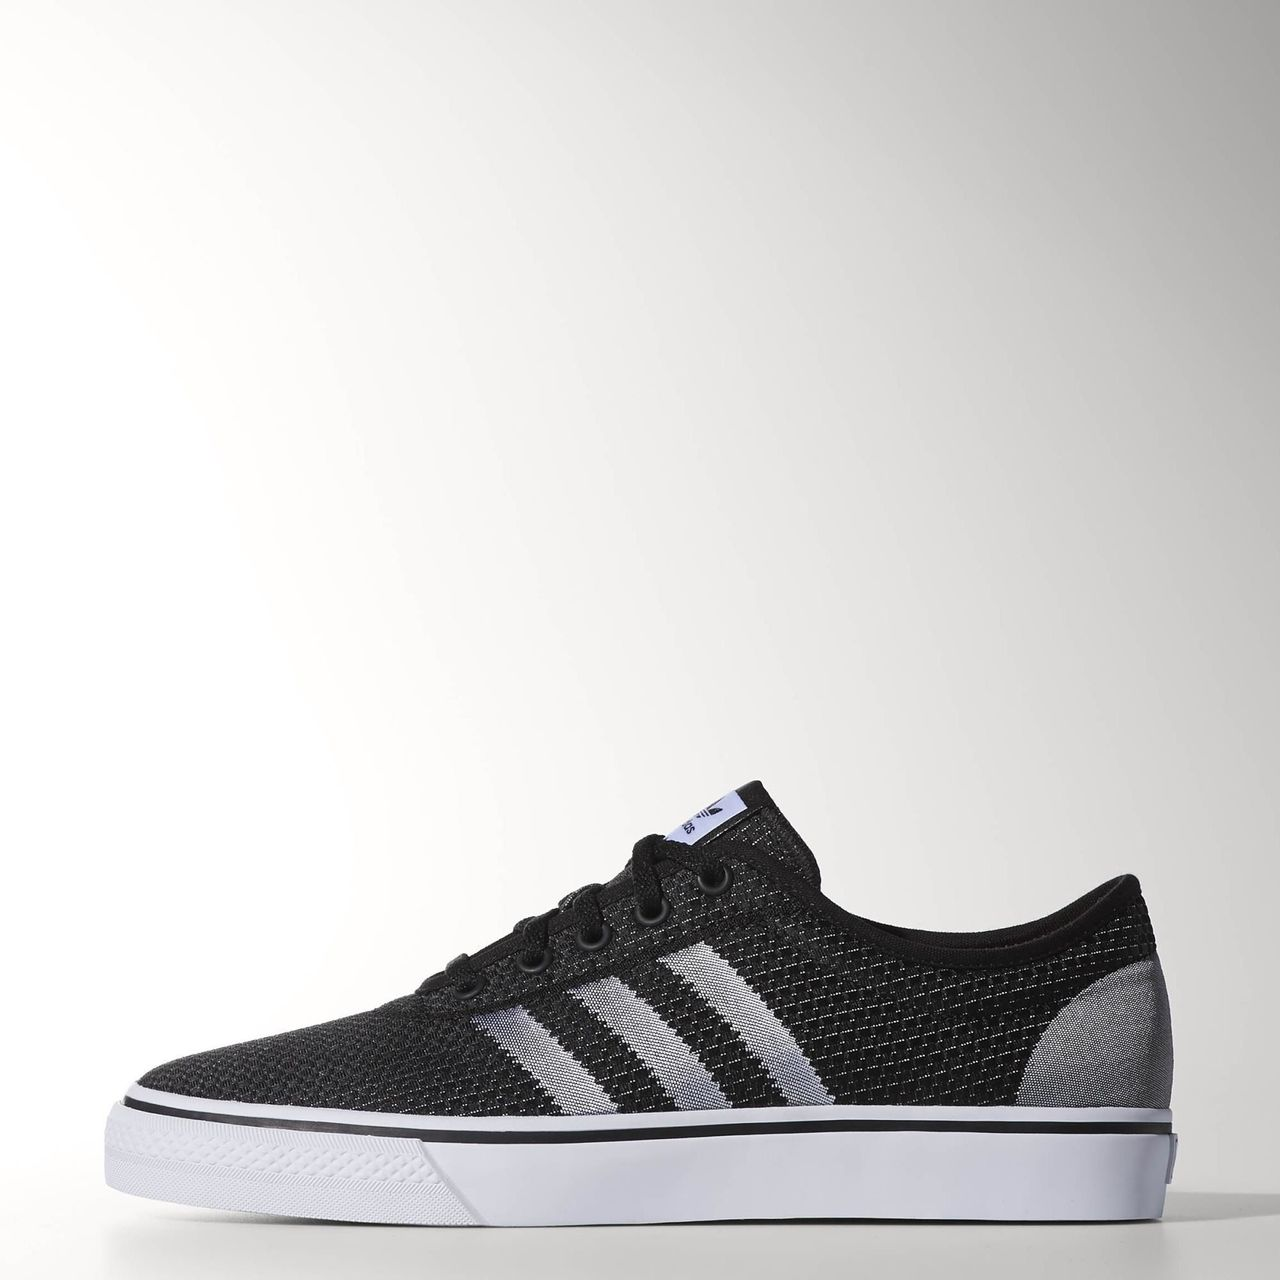 Adidas Black And White Weave Shoes